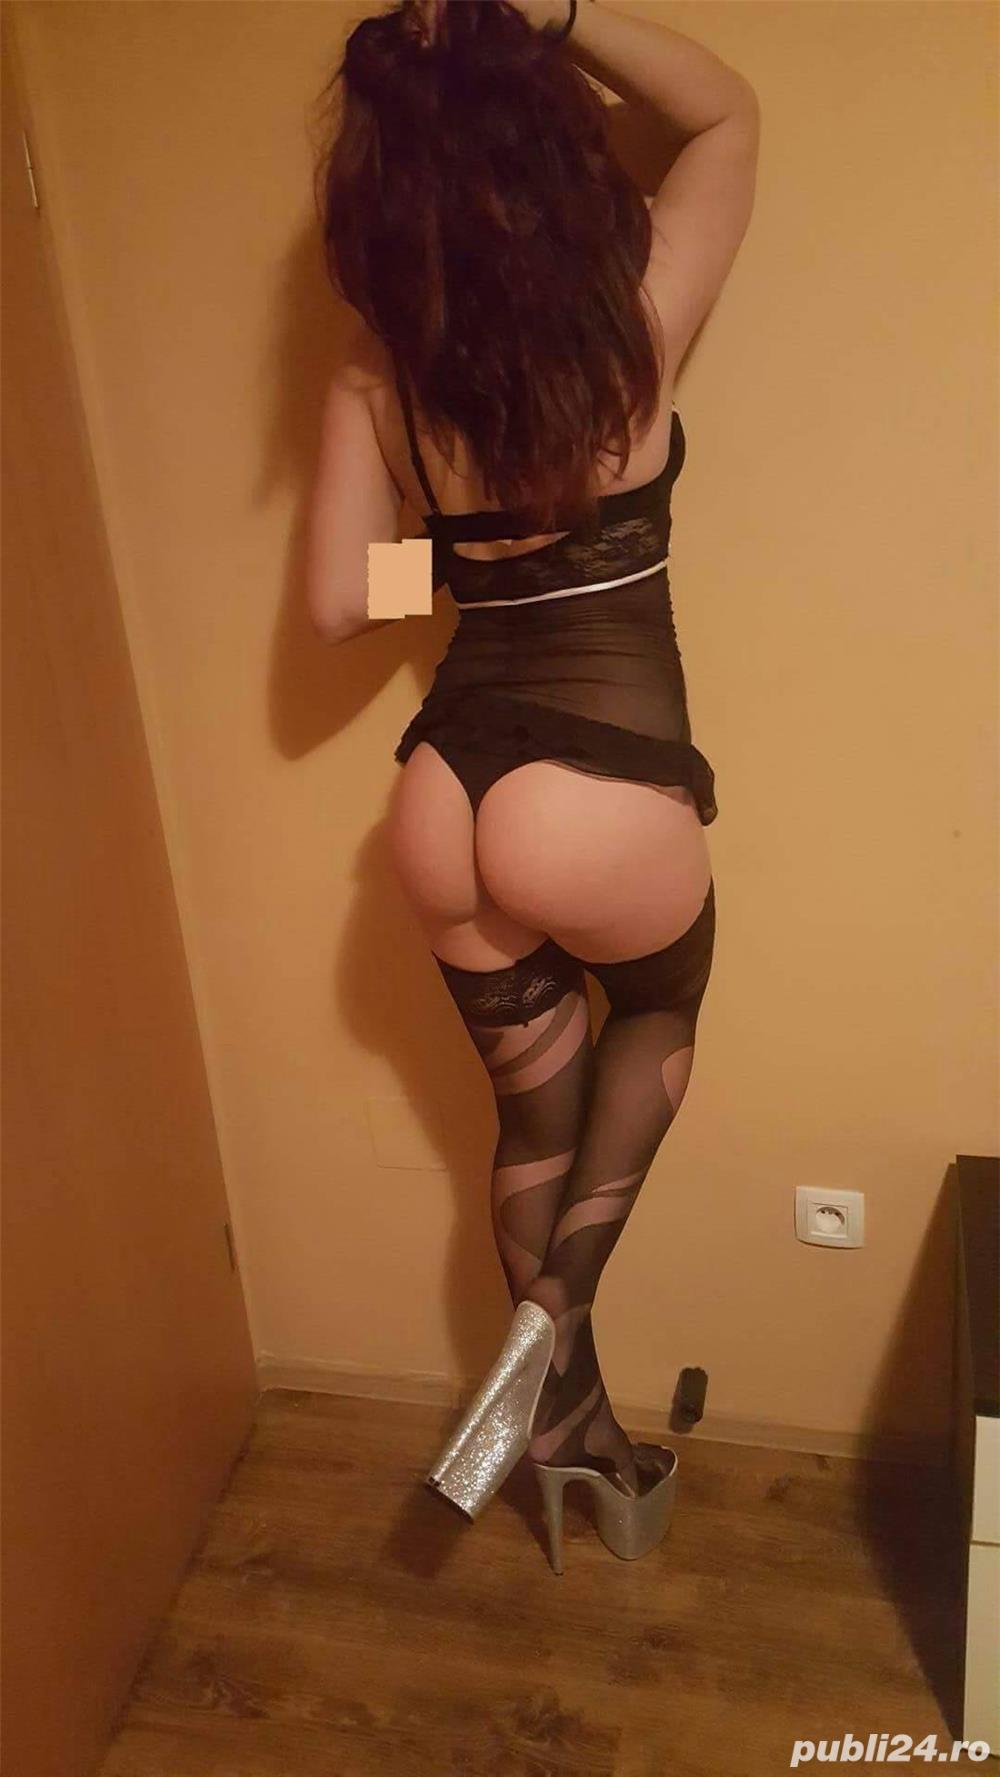 massasje og sex latvia escort girls